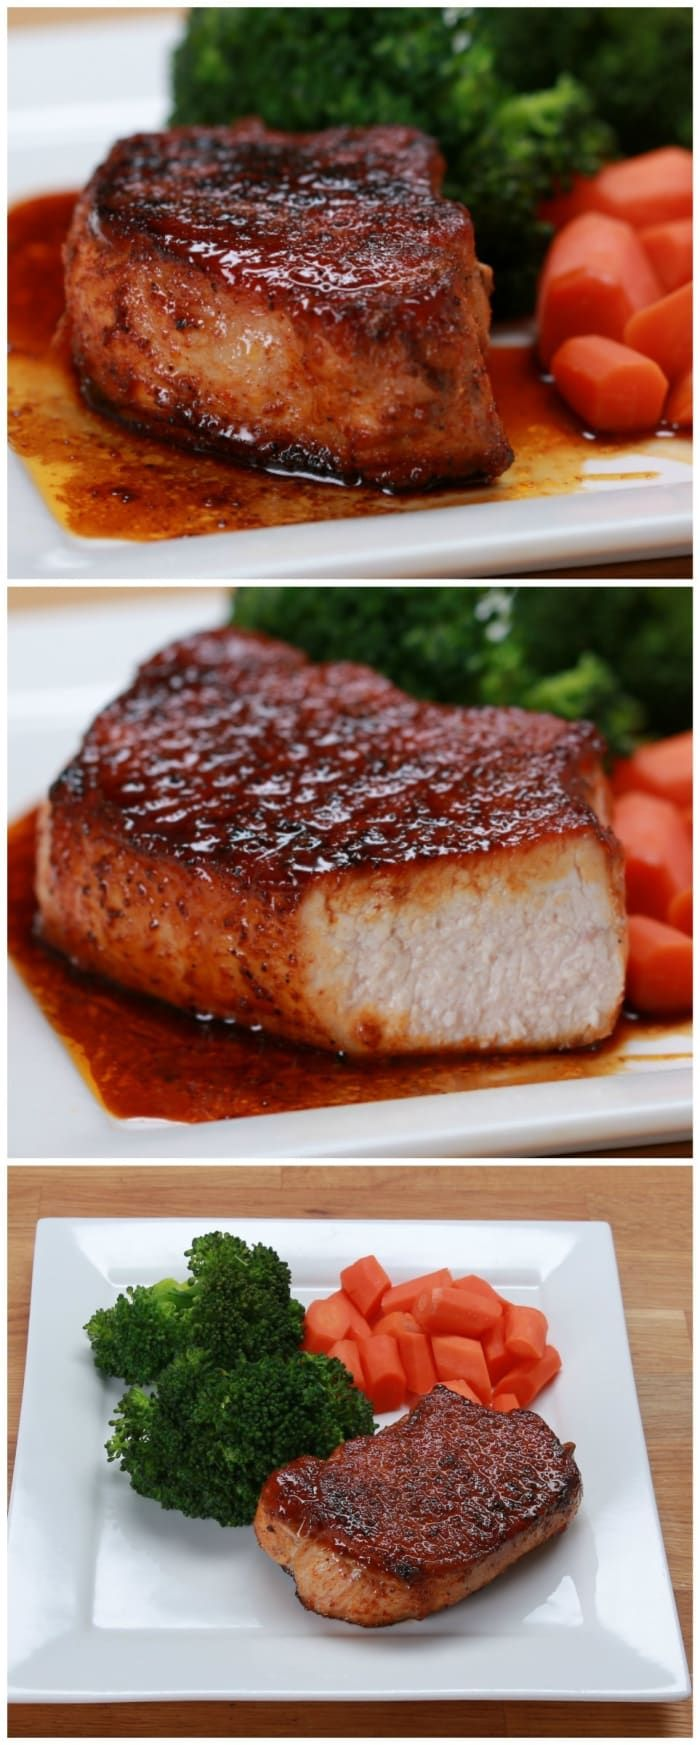 Here Is A Recipe For Easy Glazed Pork Chops That Is Pretty Fantastic